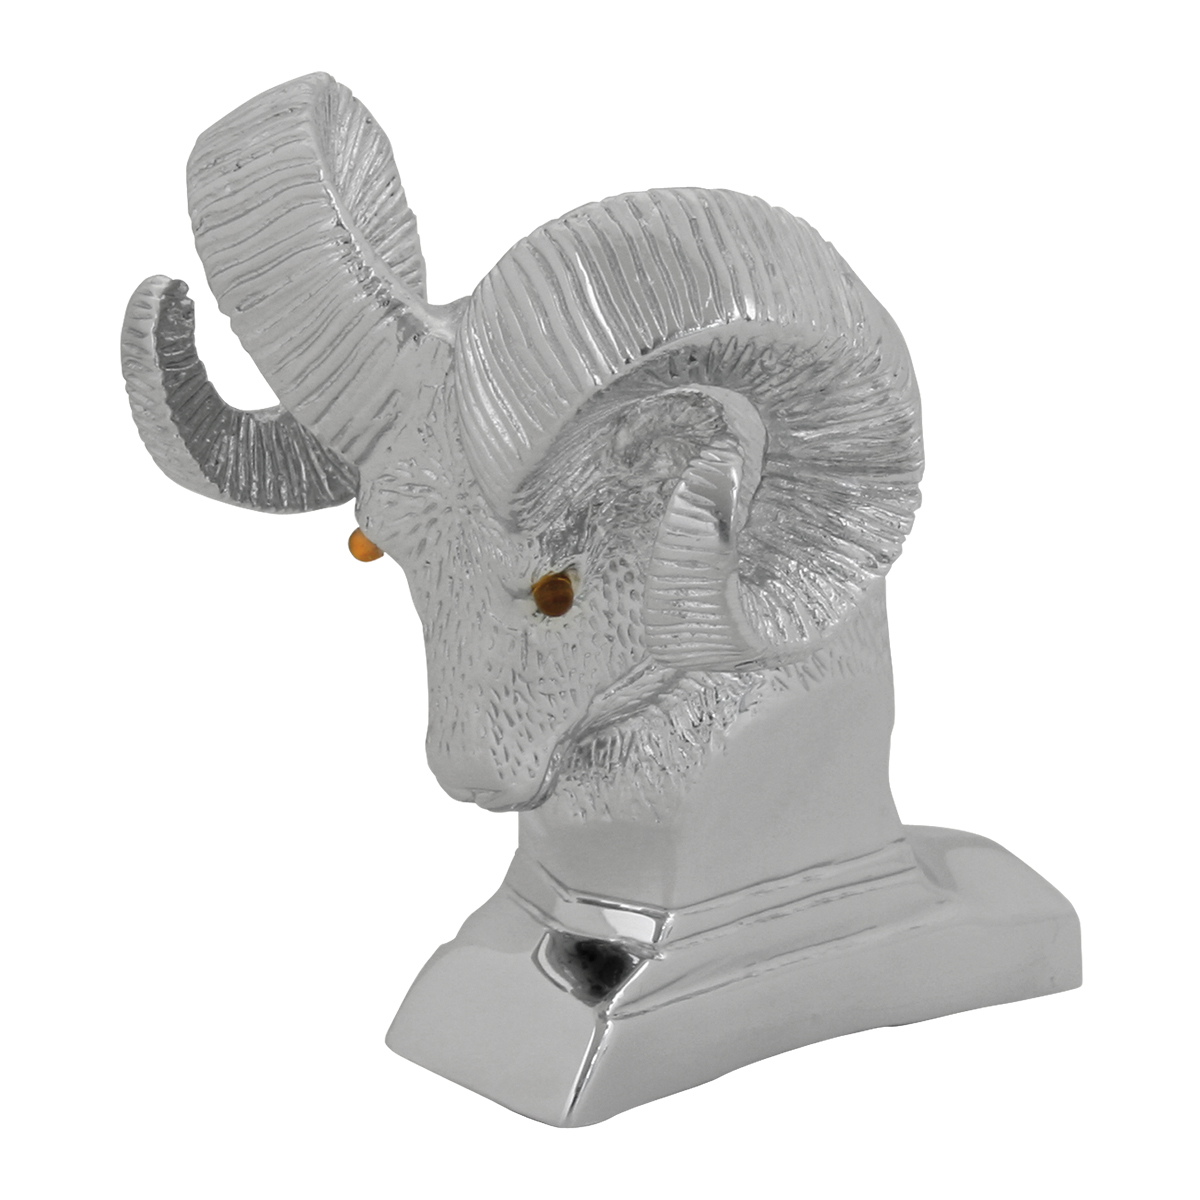 Chrome Cast Die Ram's Head with Illuminated Amber Eyes Hood Ornament – Eyes unlit